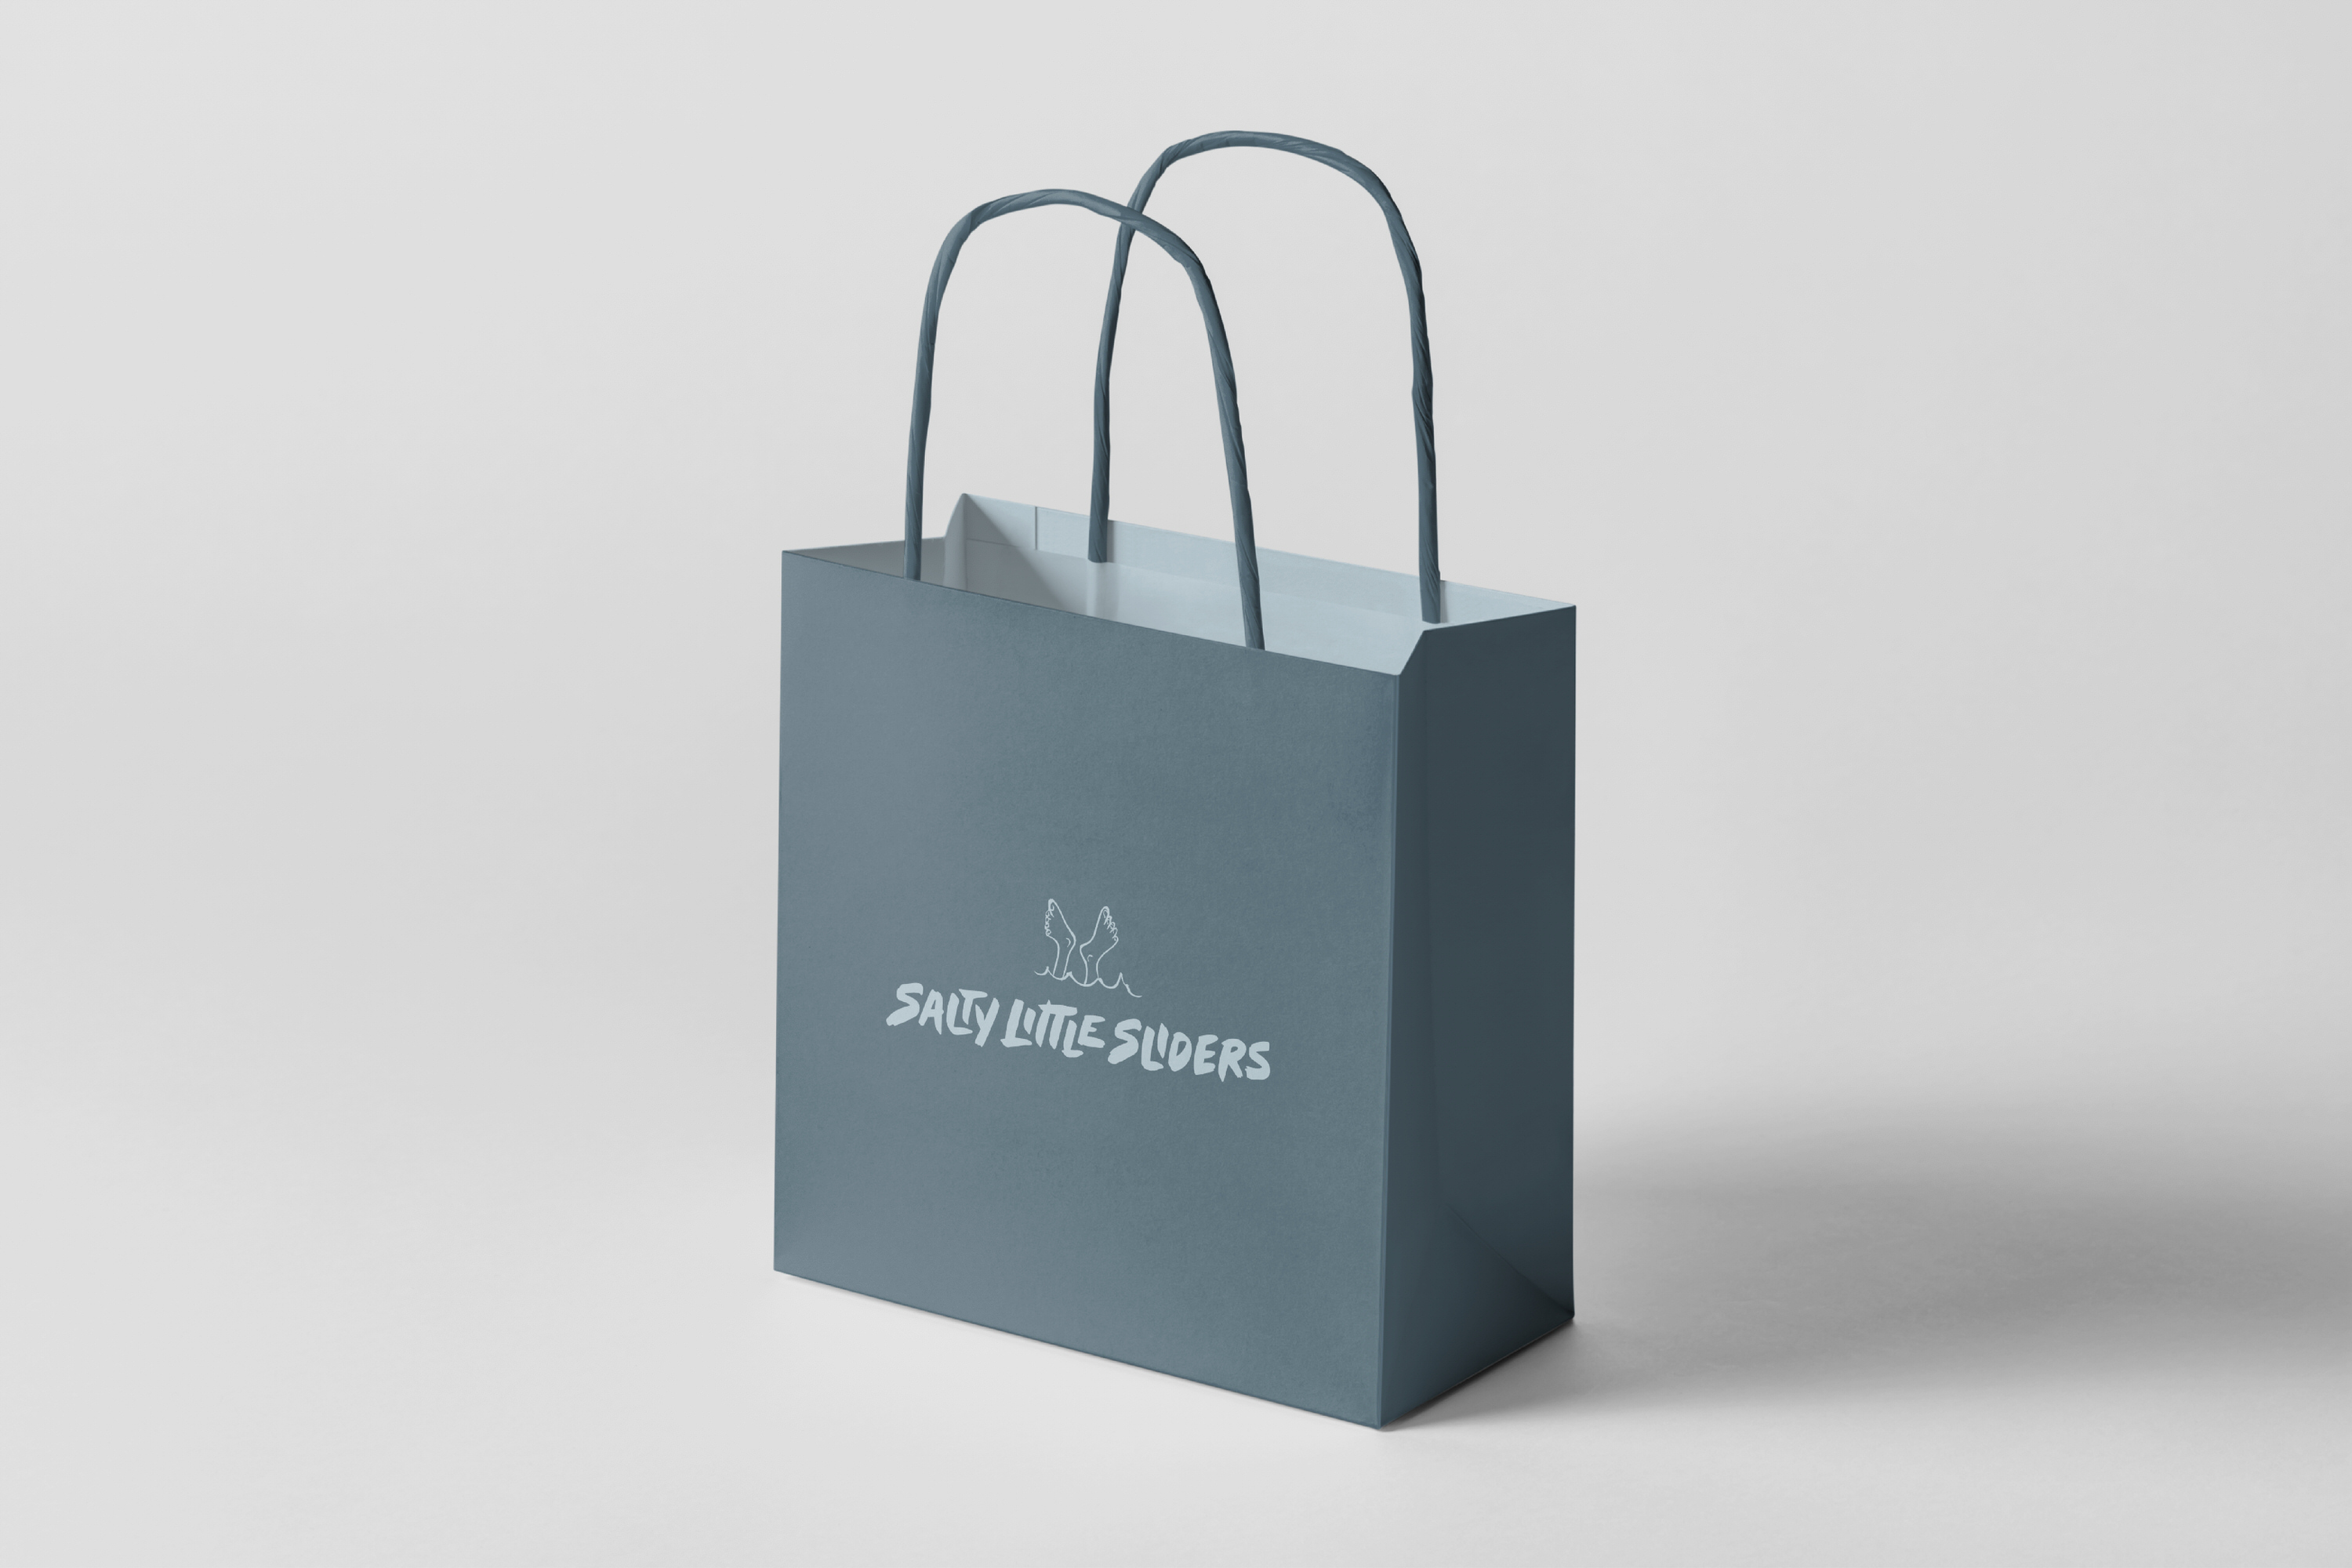 Salty_Little_Sliders_Shopping_Bag